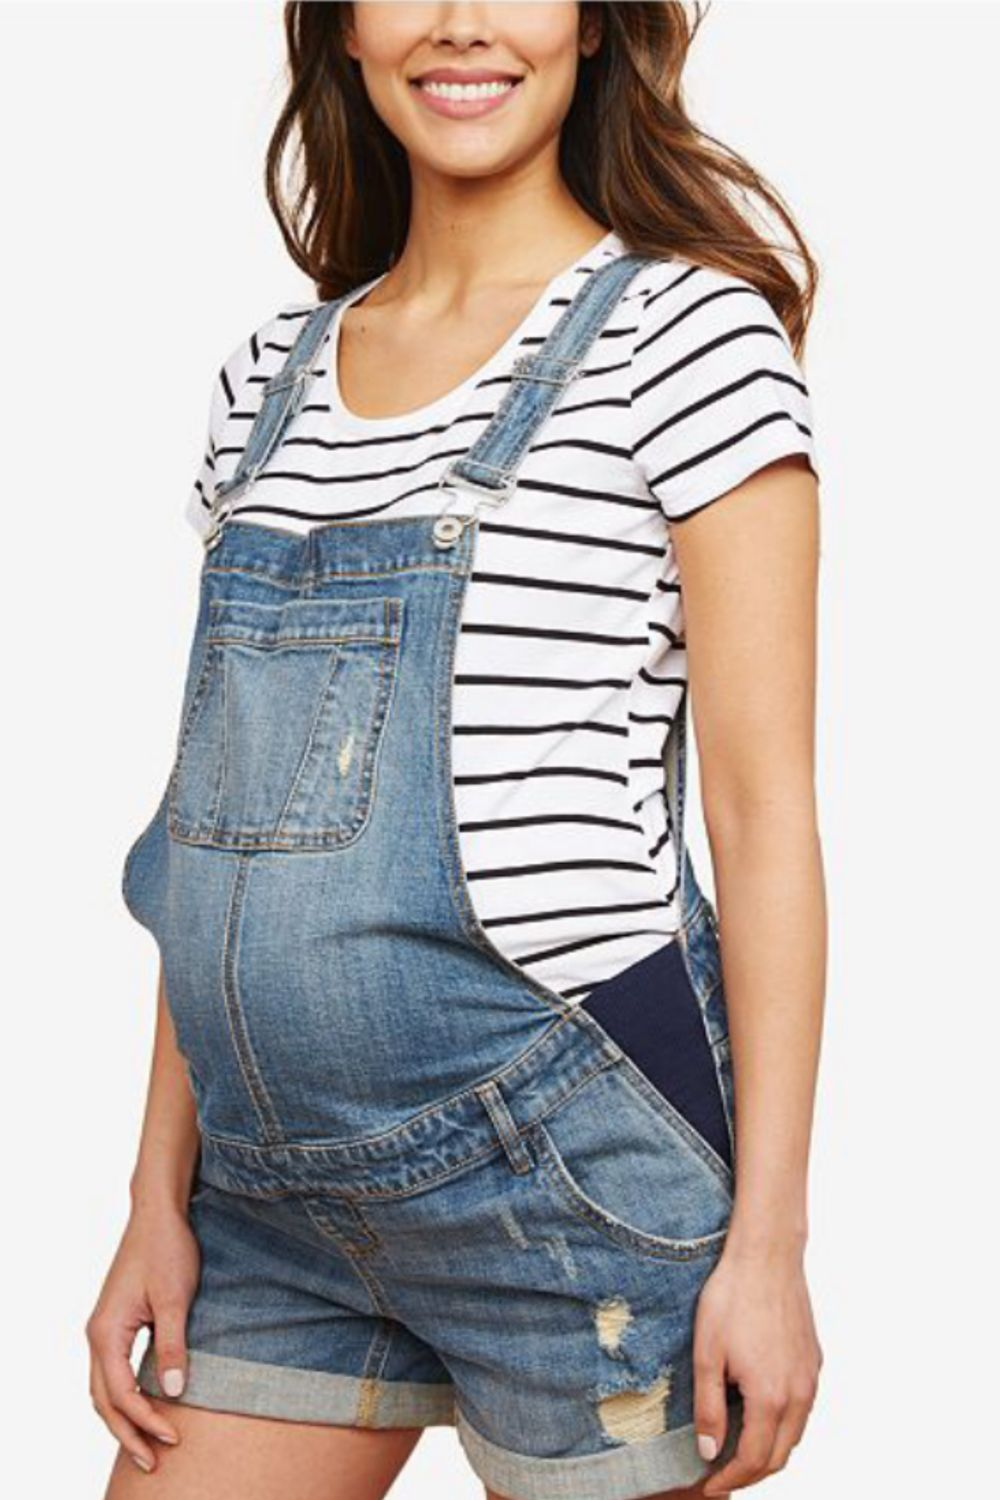 beb23da242055 Go old school in Motherhood Maternity's need-now denim overalls, complete  with stretch panels